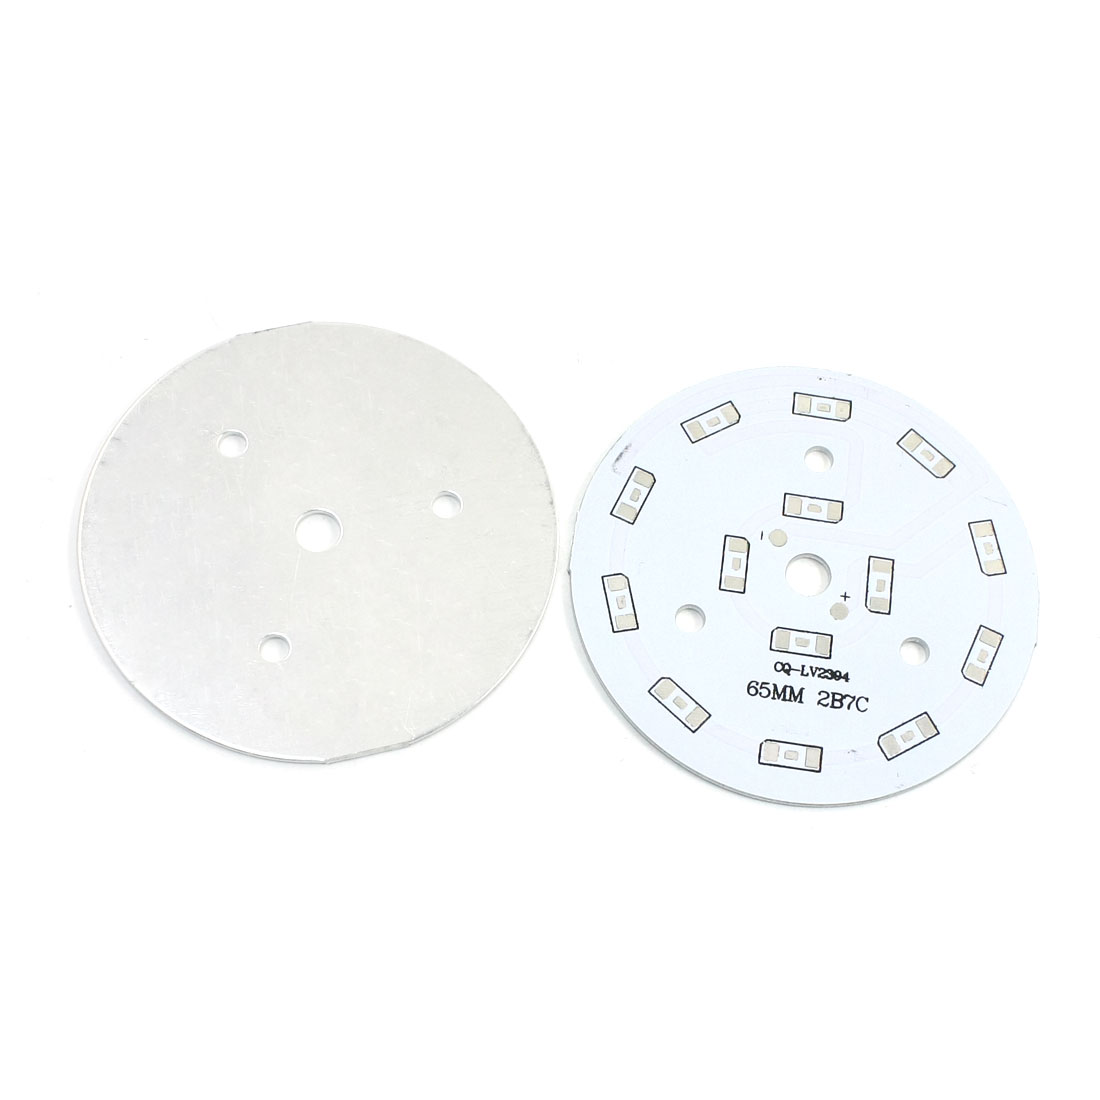 2Pcs 14 x 1/2W 5730 SMD LED High Power DIY Circle Aluminum PCB Circuit Board 65mm Diameter